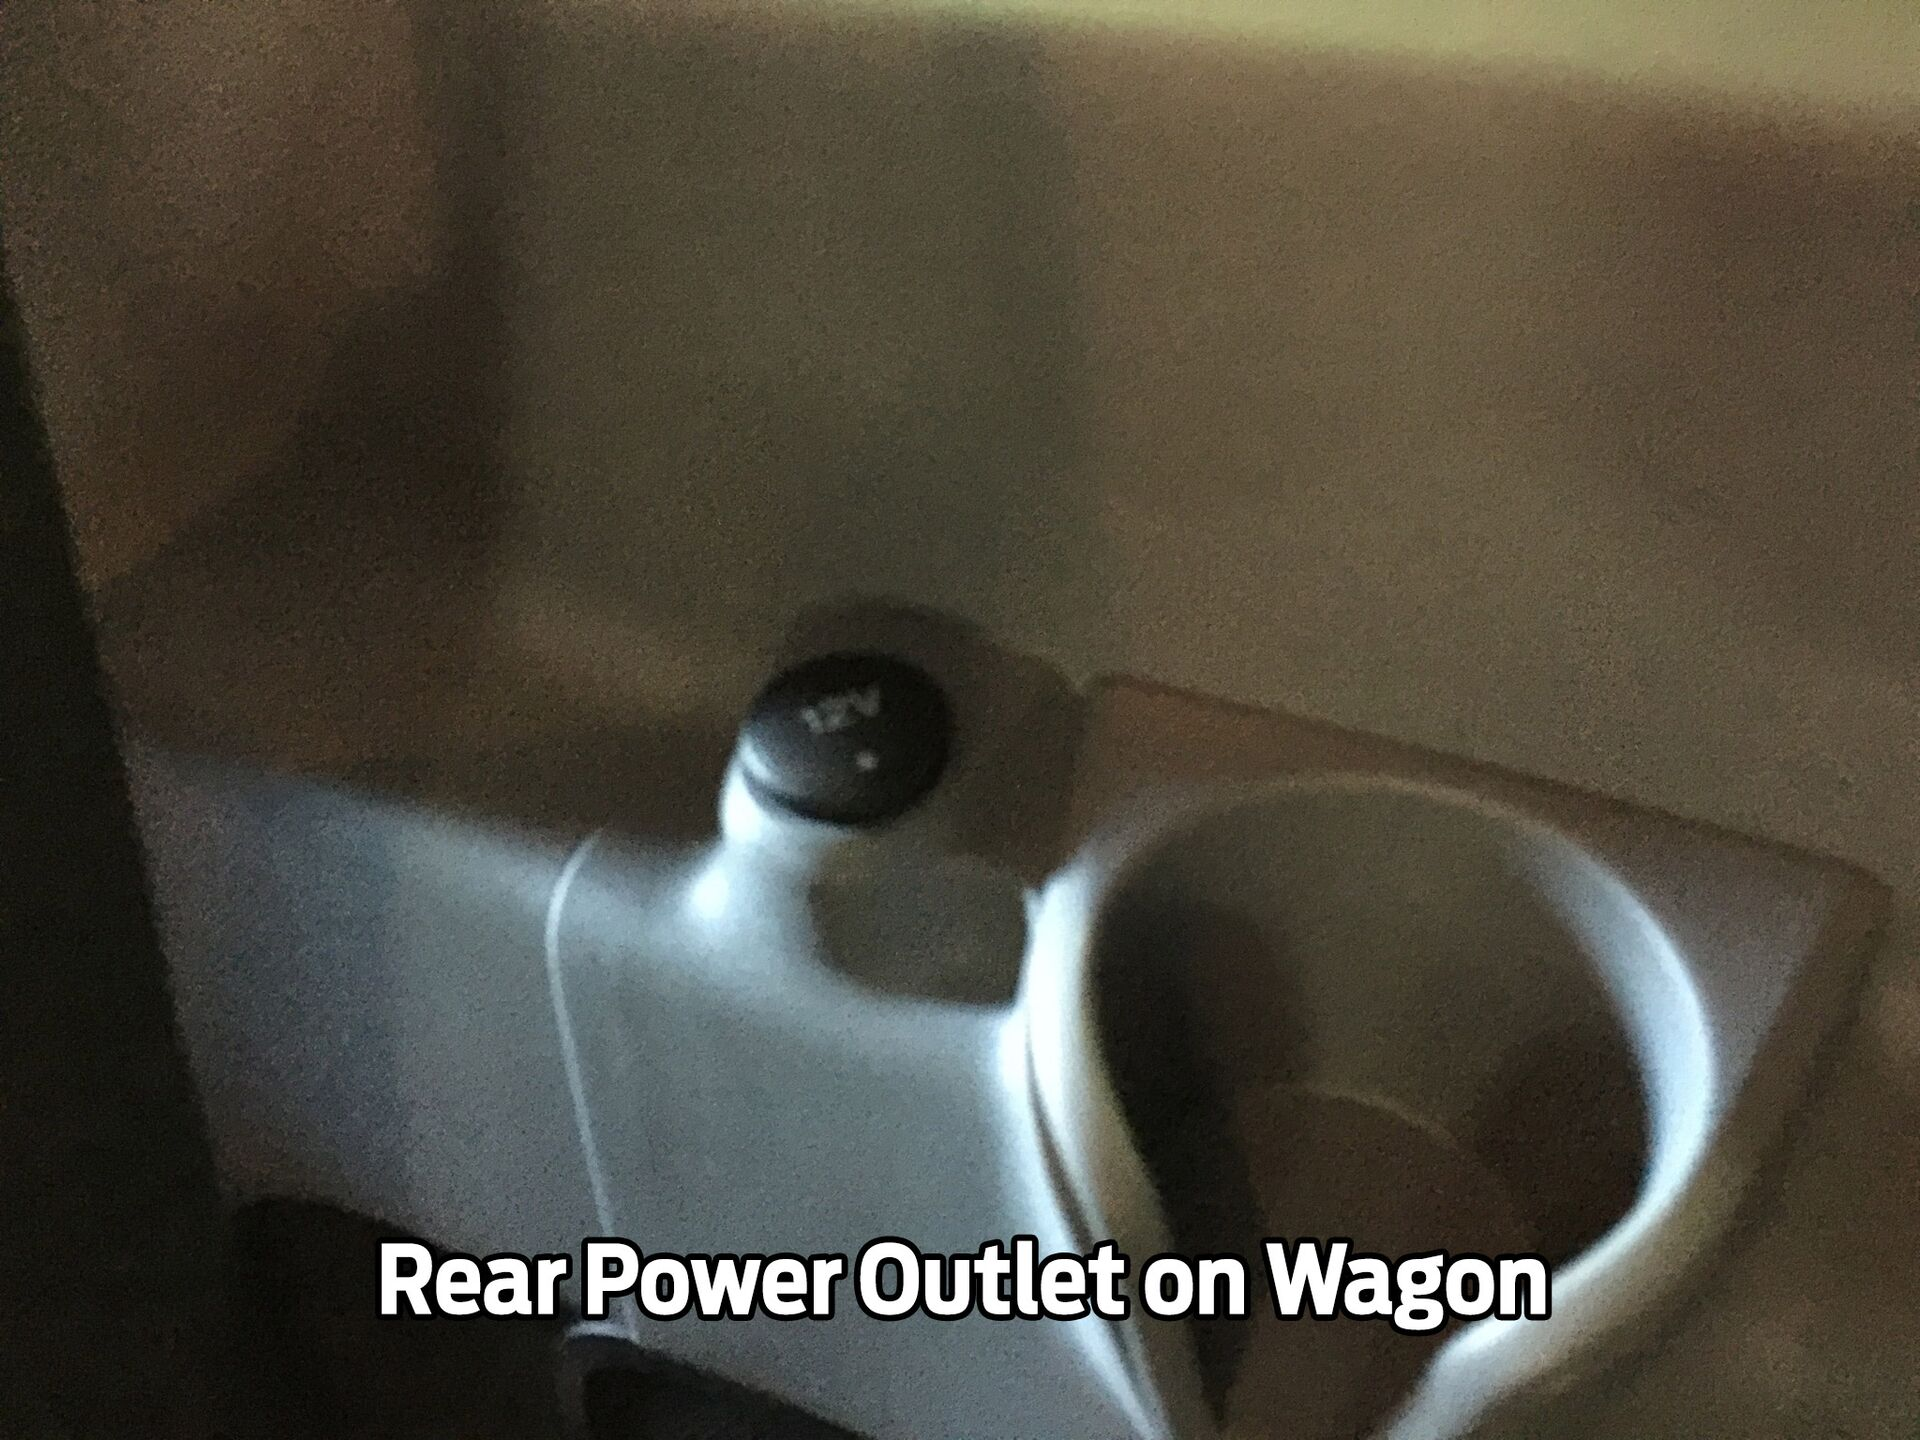 Rear Power Outlet on Wagon